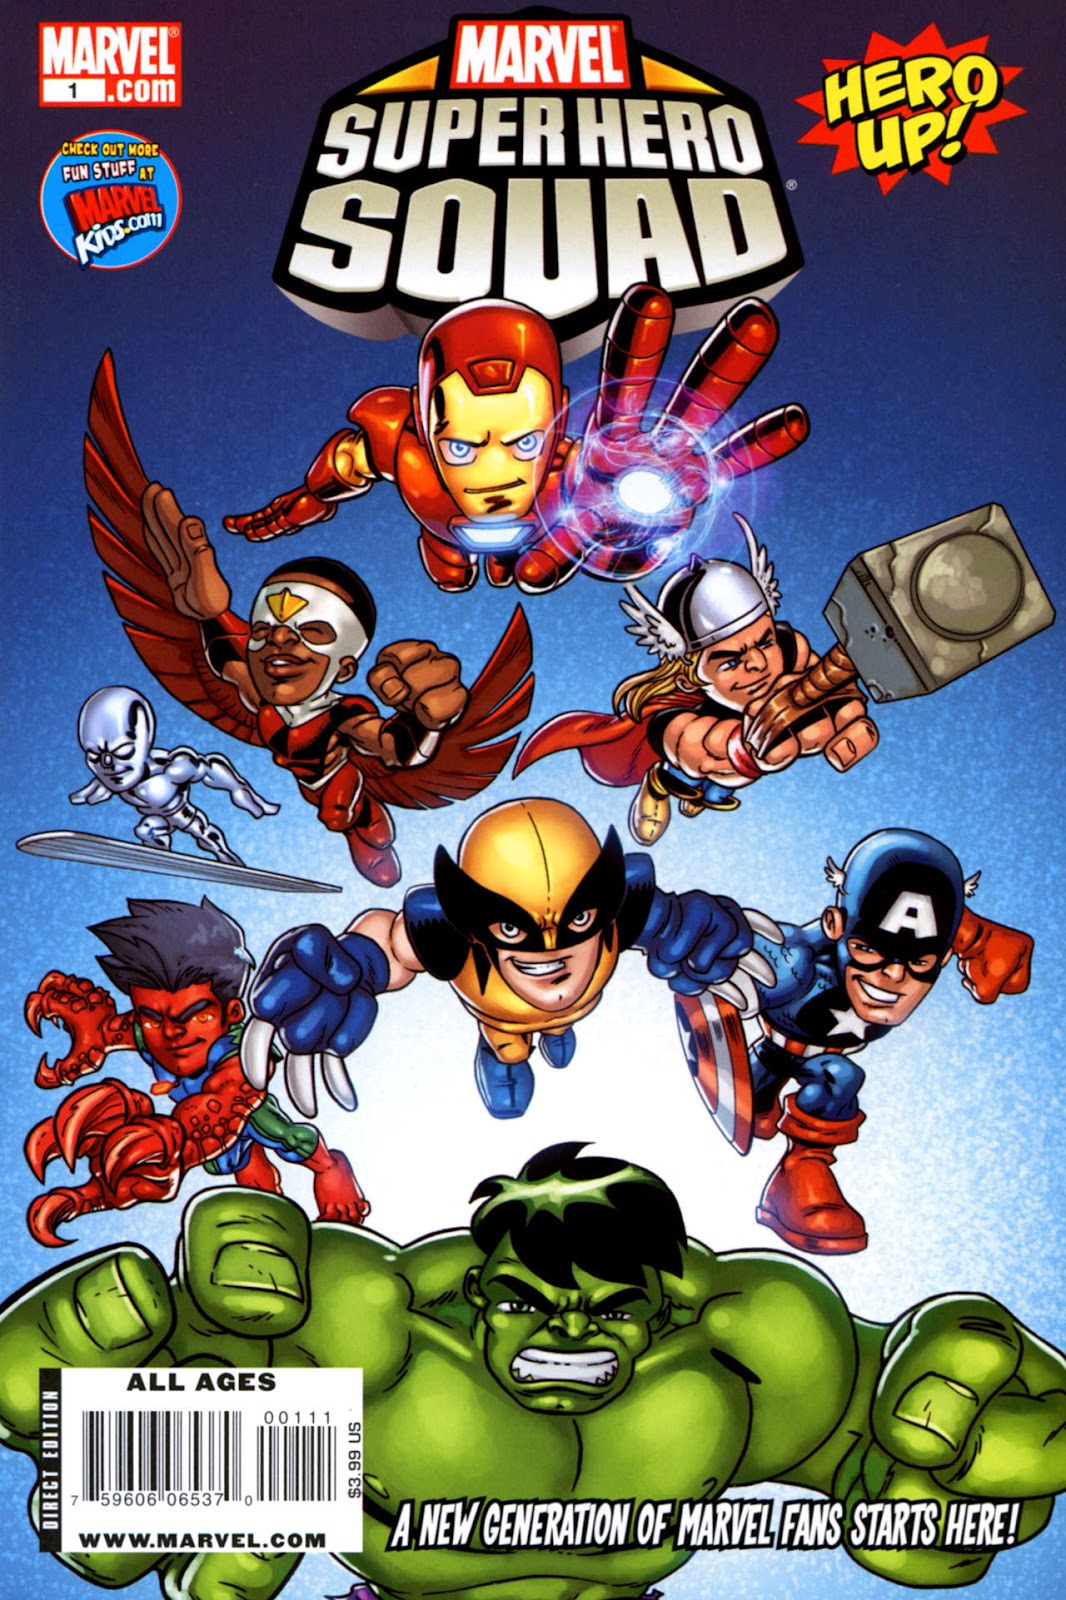 Read online Marvel Super Hero Squad: Hero Up! comic -  Issue # Full - 1